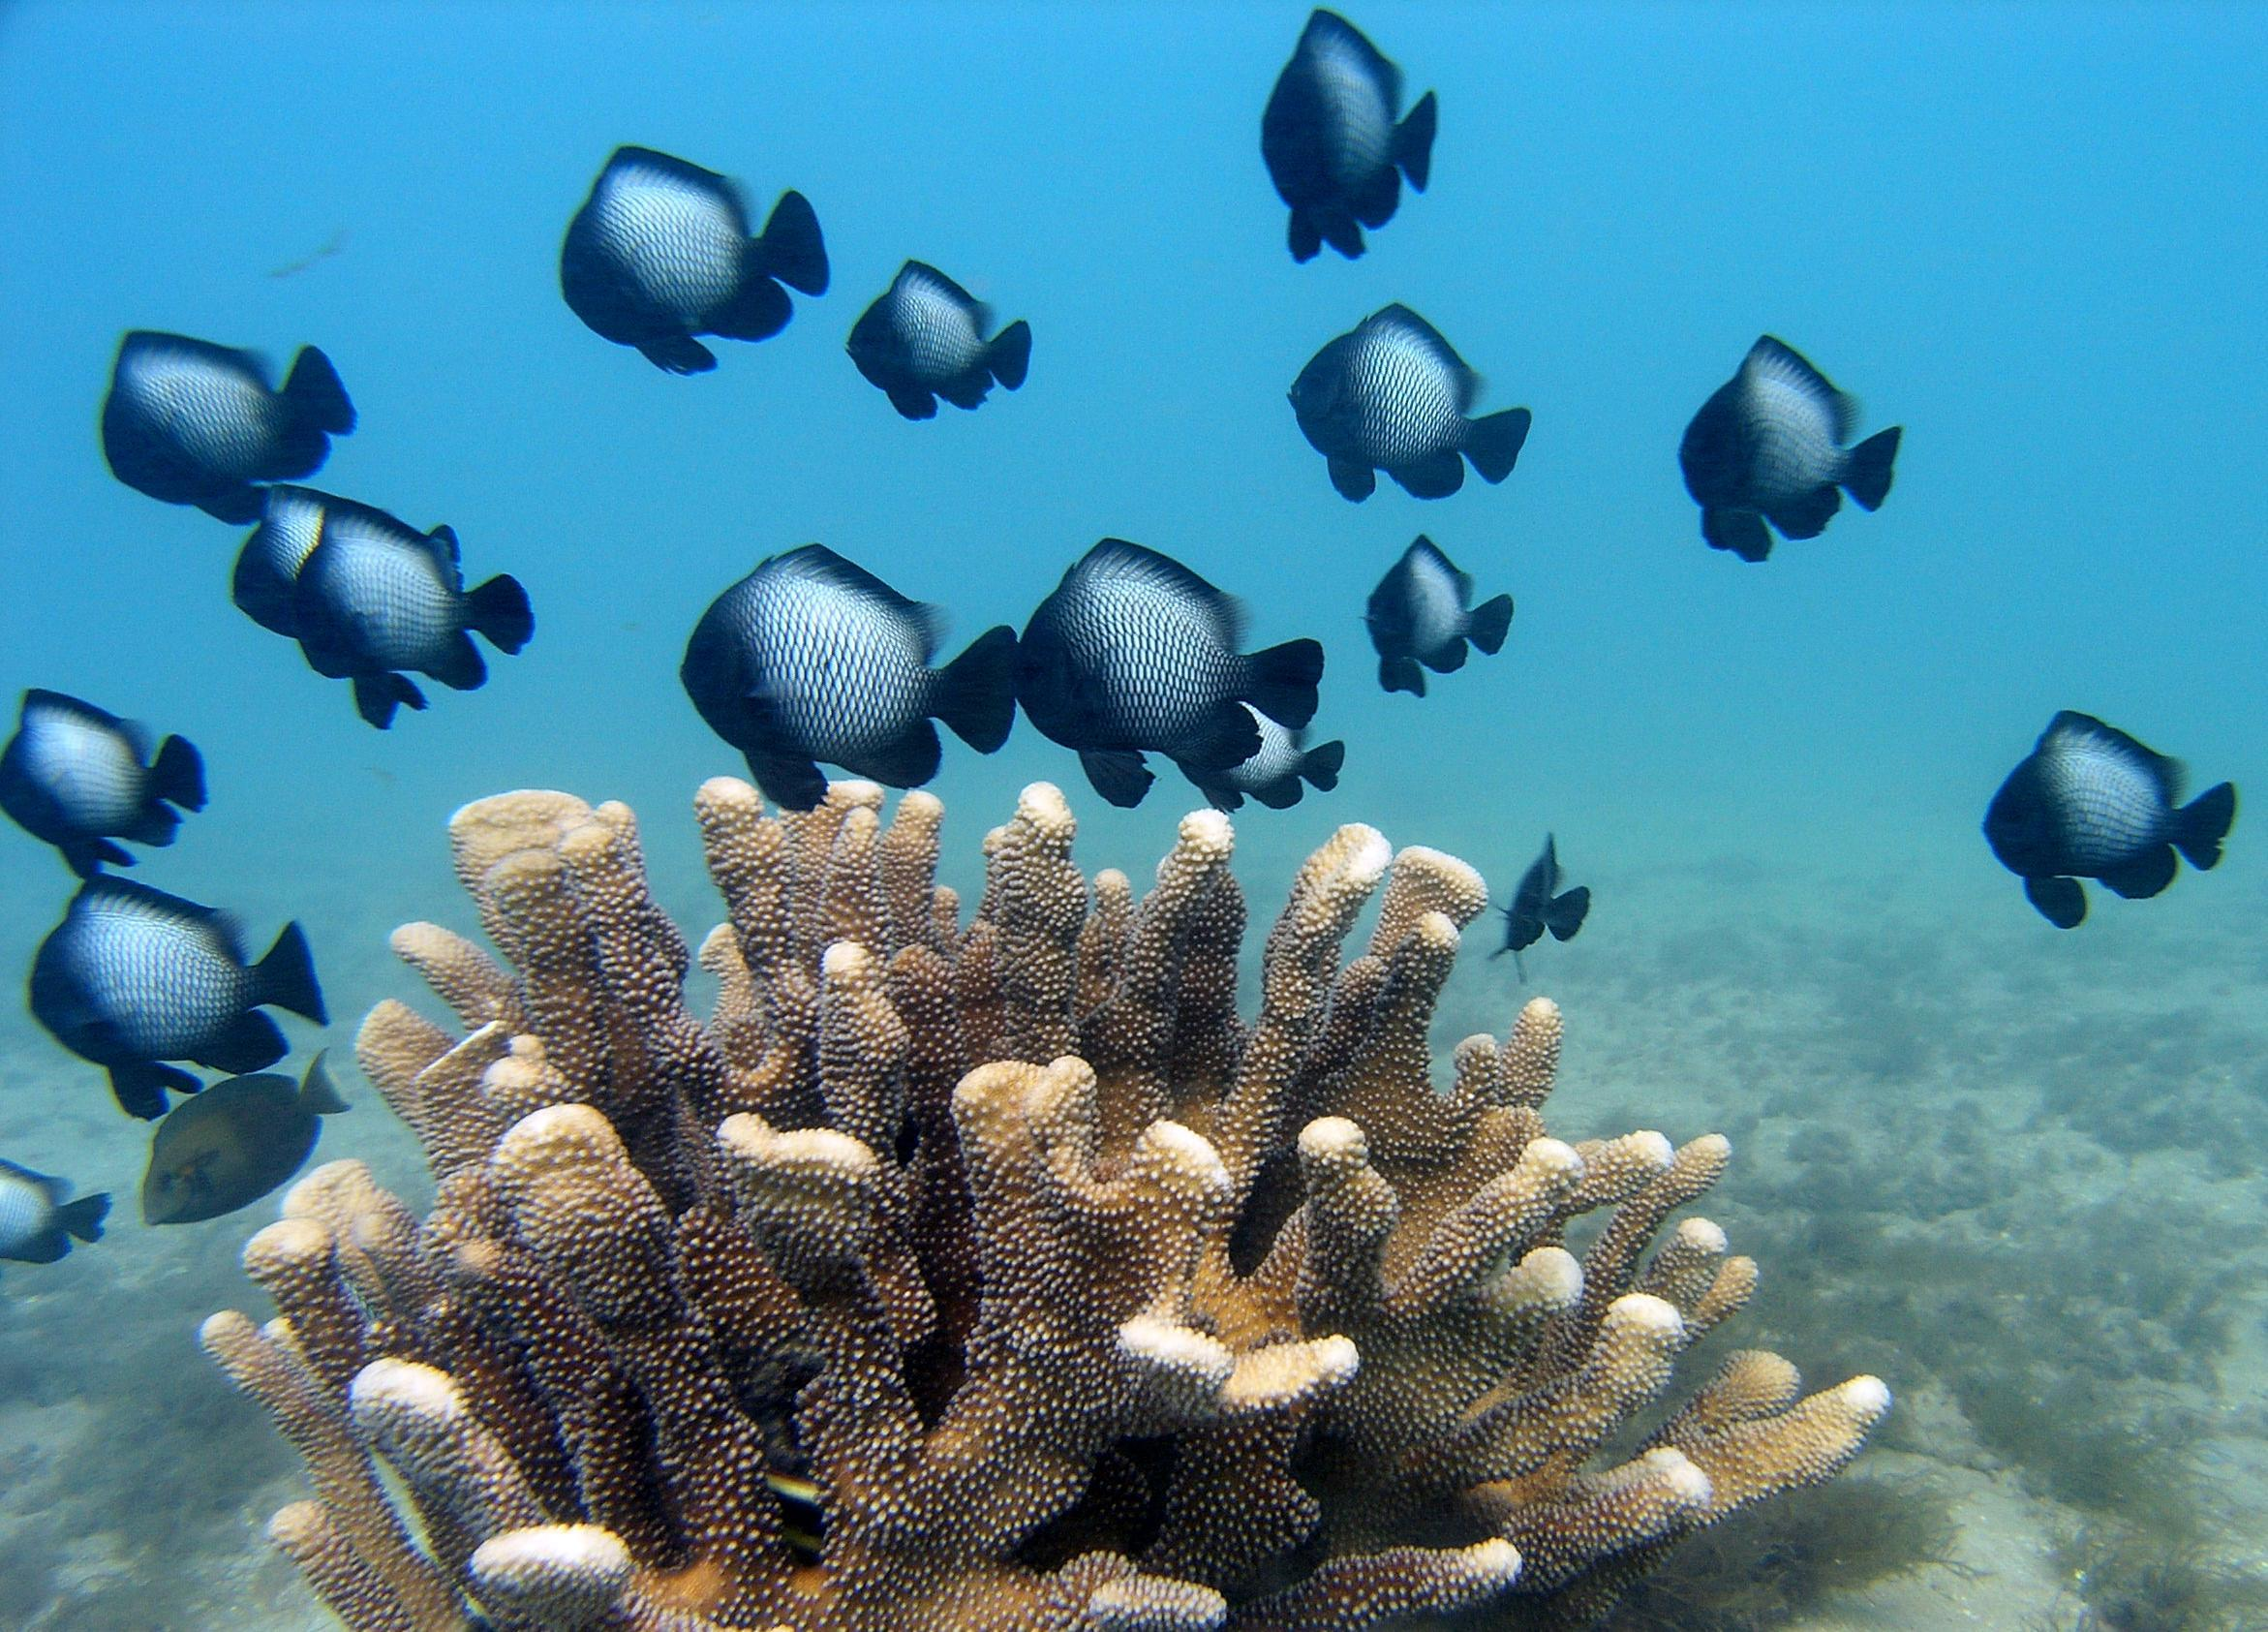 A coral reef is an oasis in an ocean. According to the National Oceanic and Atmospheric Association, coral reefs cover less than 1 percent of the ocean floor but house nearly a quarter of ocean life.